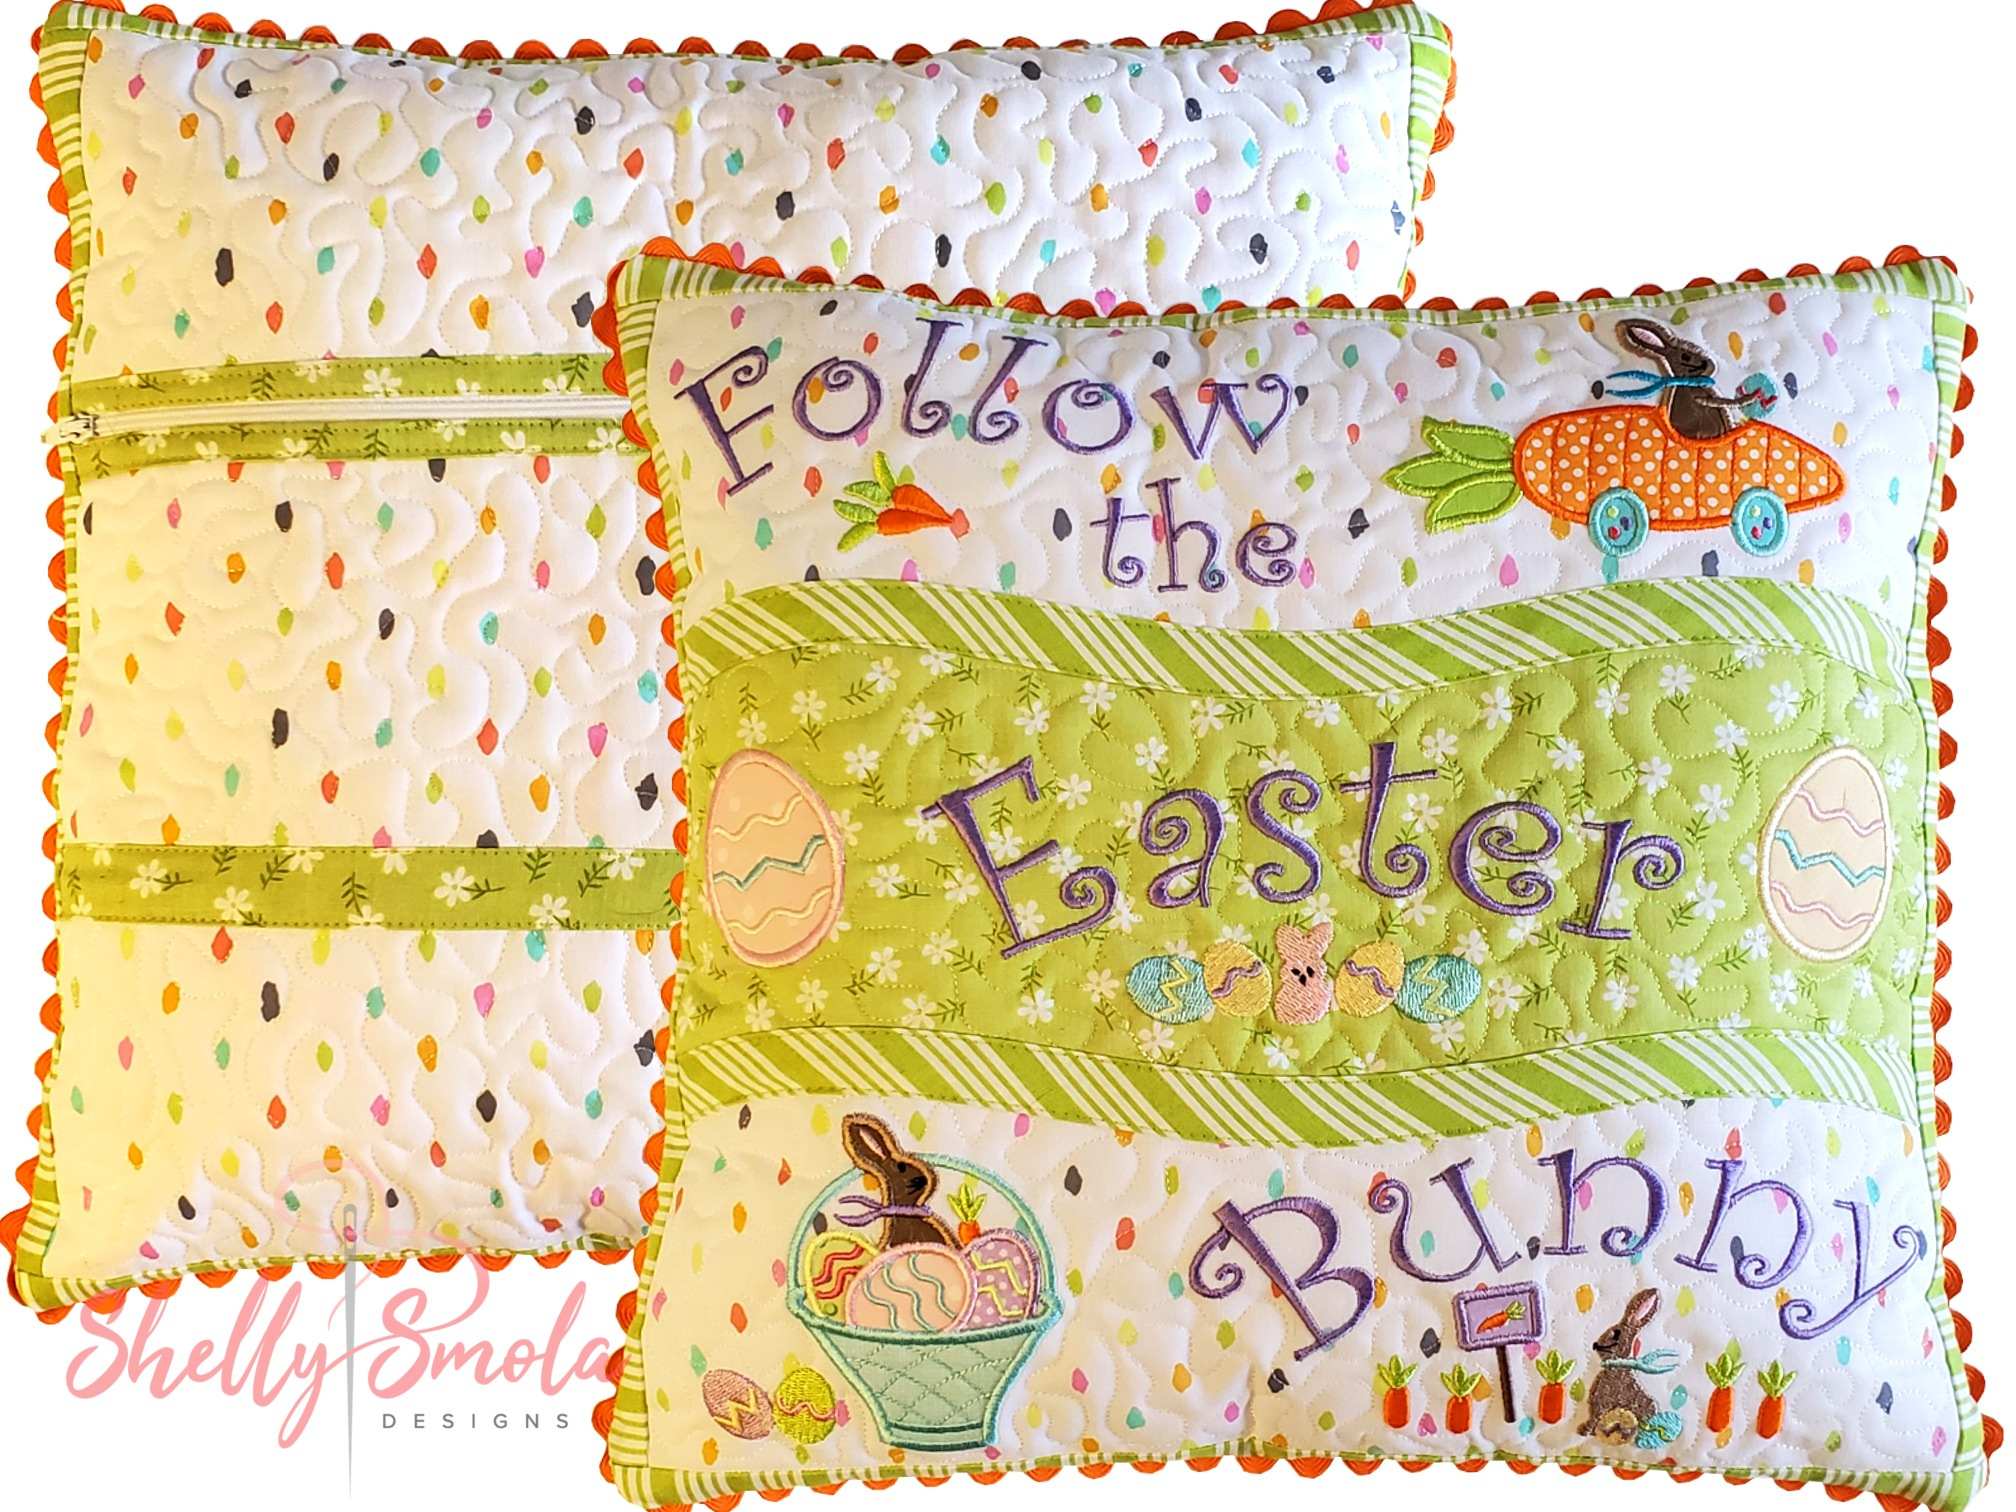 Bunny Kisses Pillow by Shelly Smola